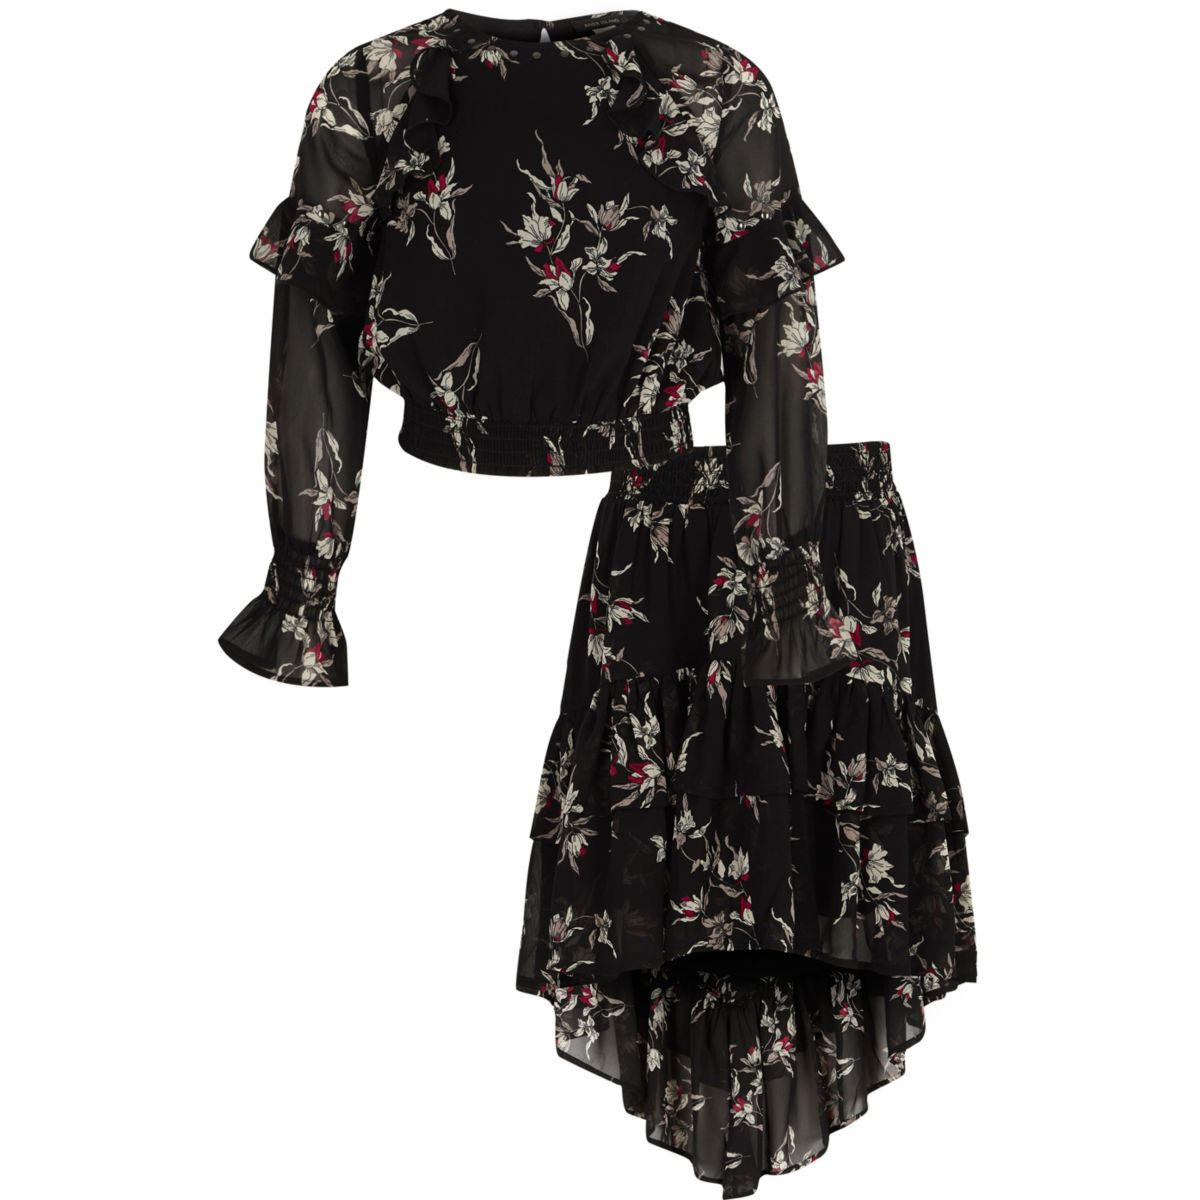 Girls black floral frill top and skirt outfit